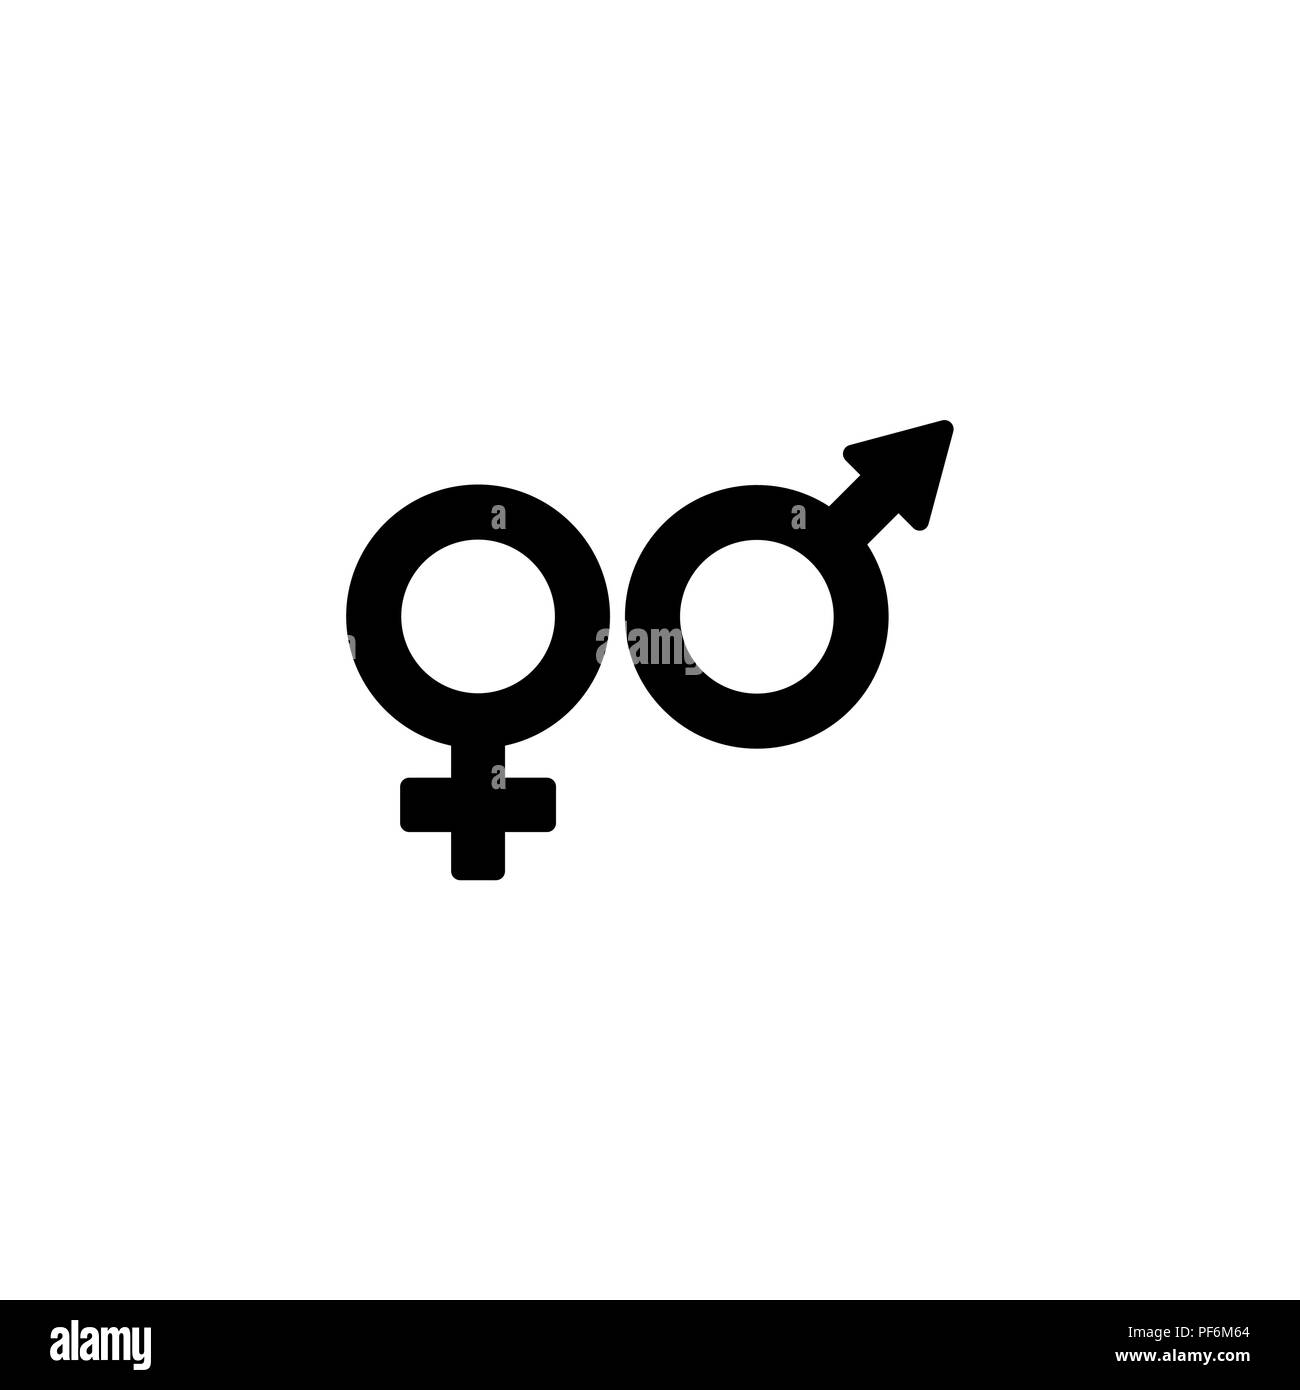 web line icon gender symbol symbols of men and women stock vector image art alamy https www alamy com web line icon gender symbol symbols of men and women image215891820 html